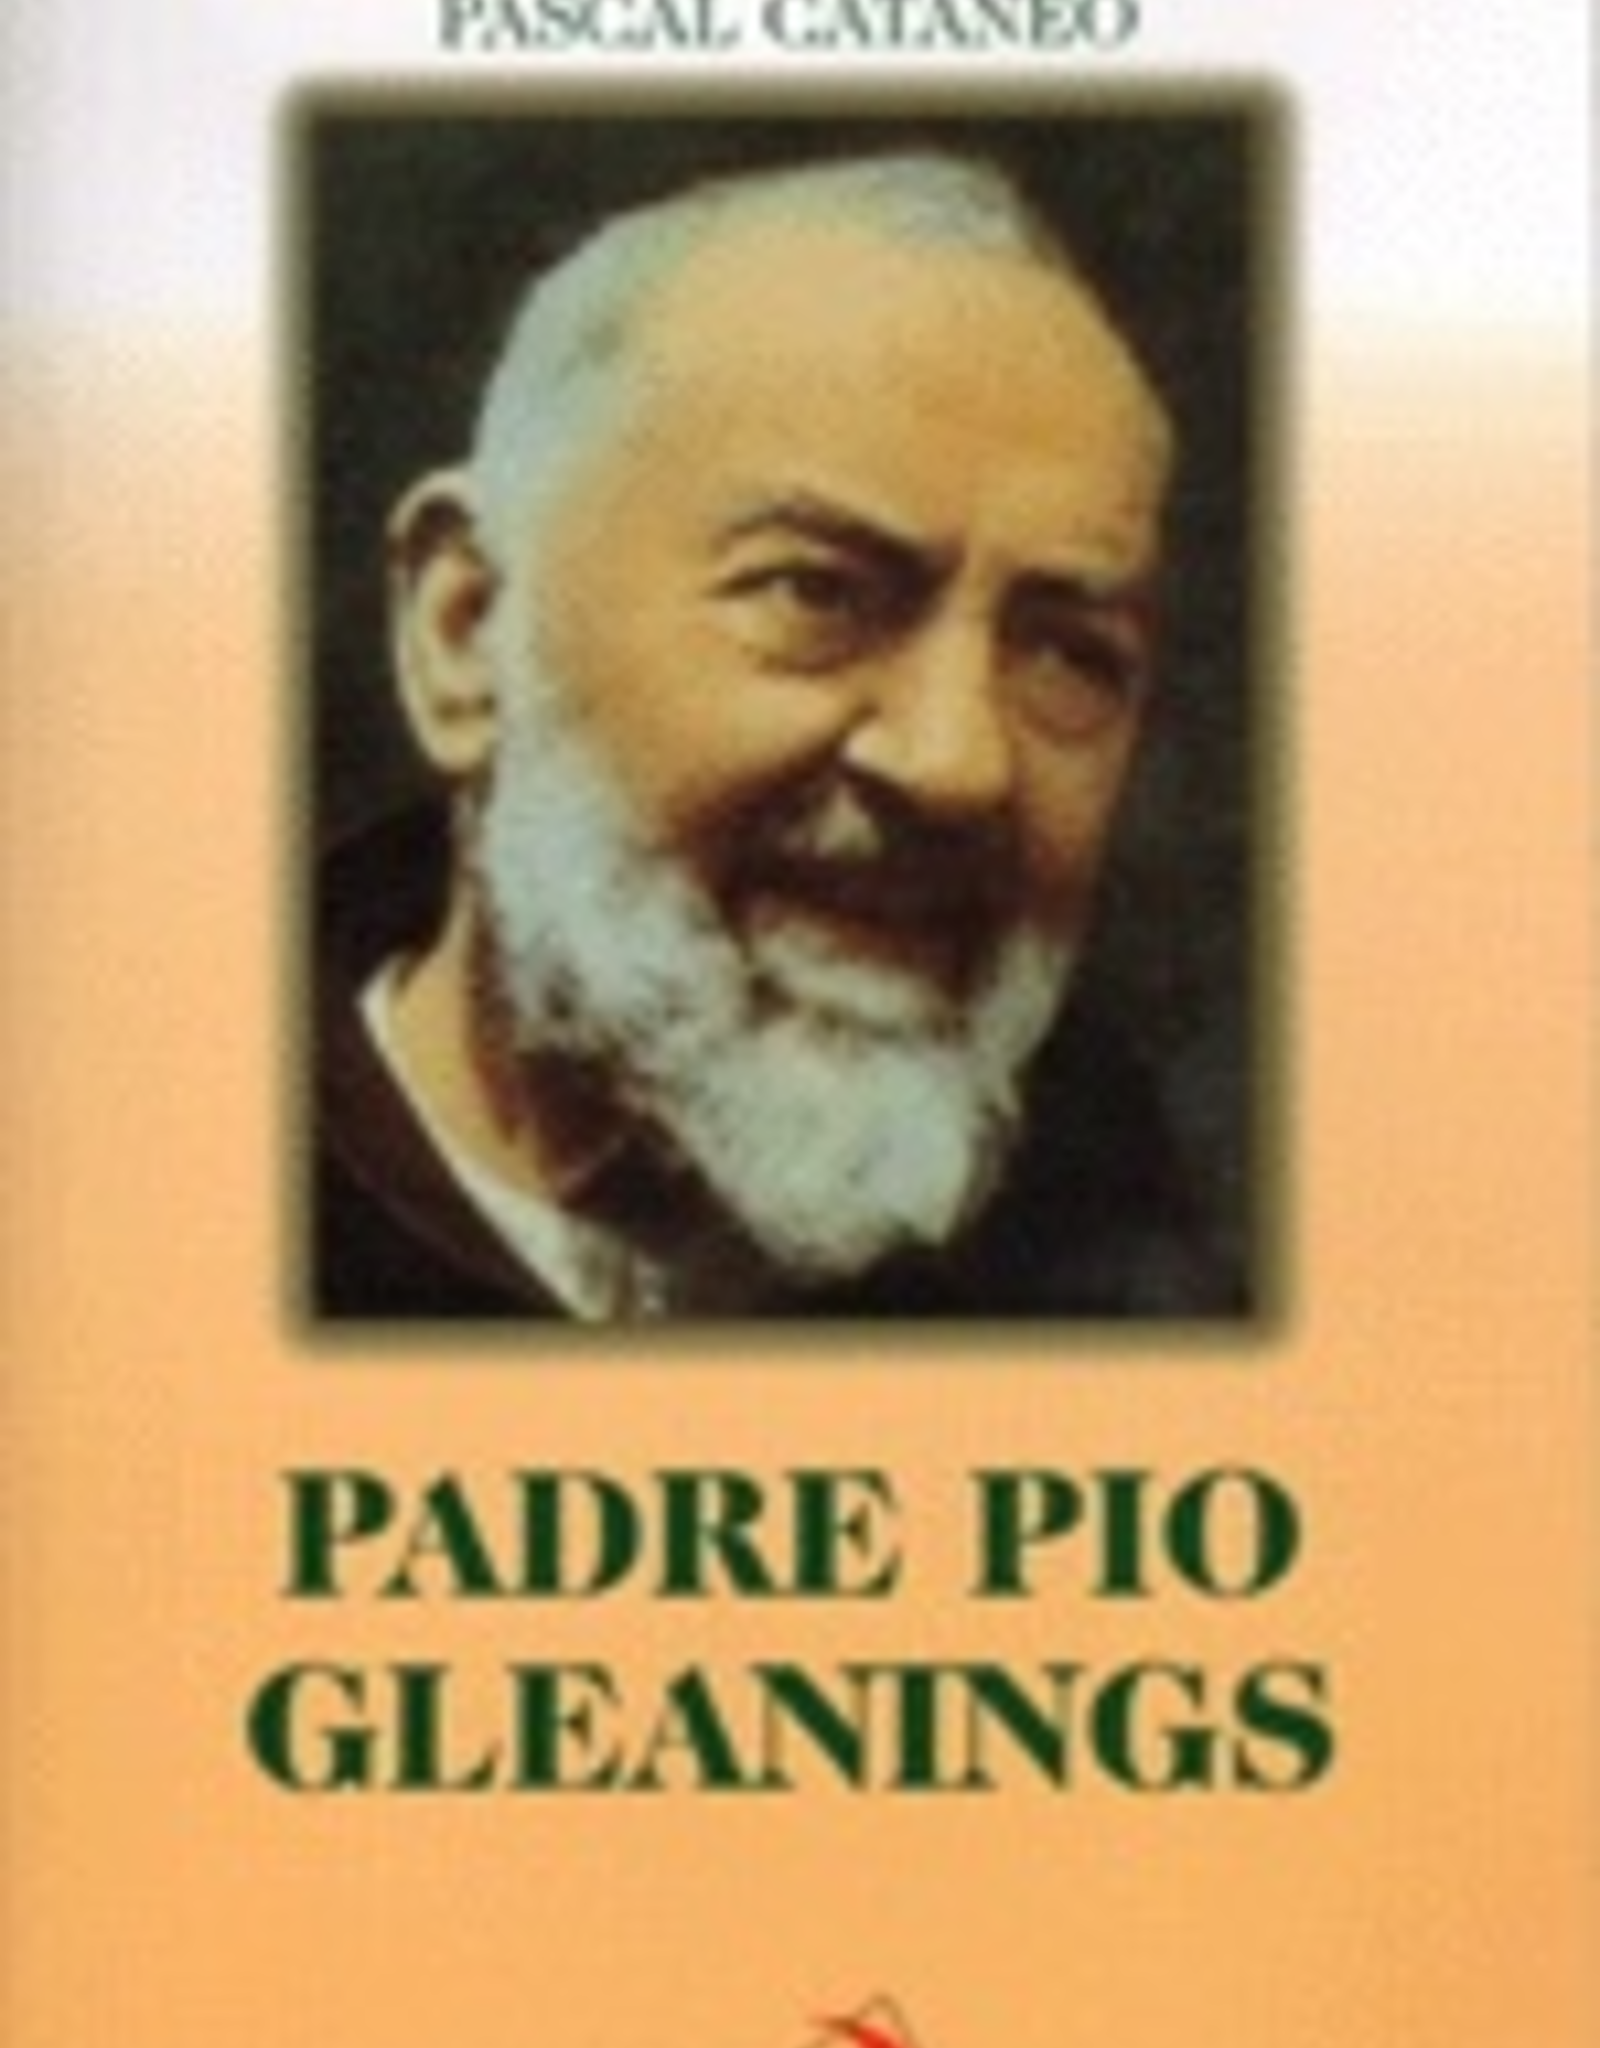 Pauline Padre Pio Gleanings, by Pascal Cataneo (paperback)